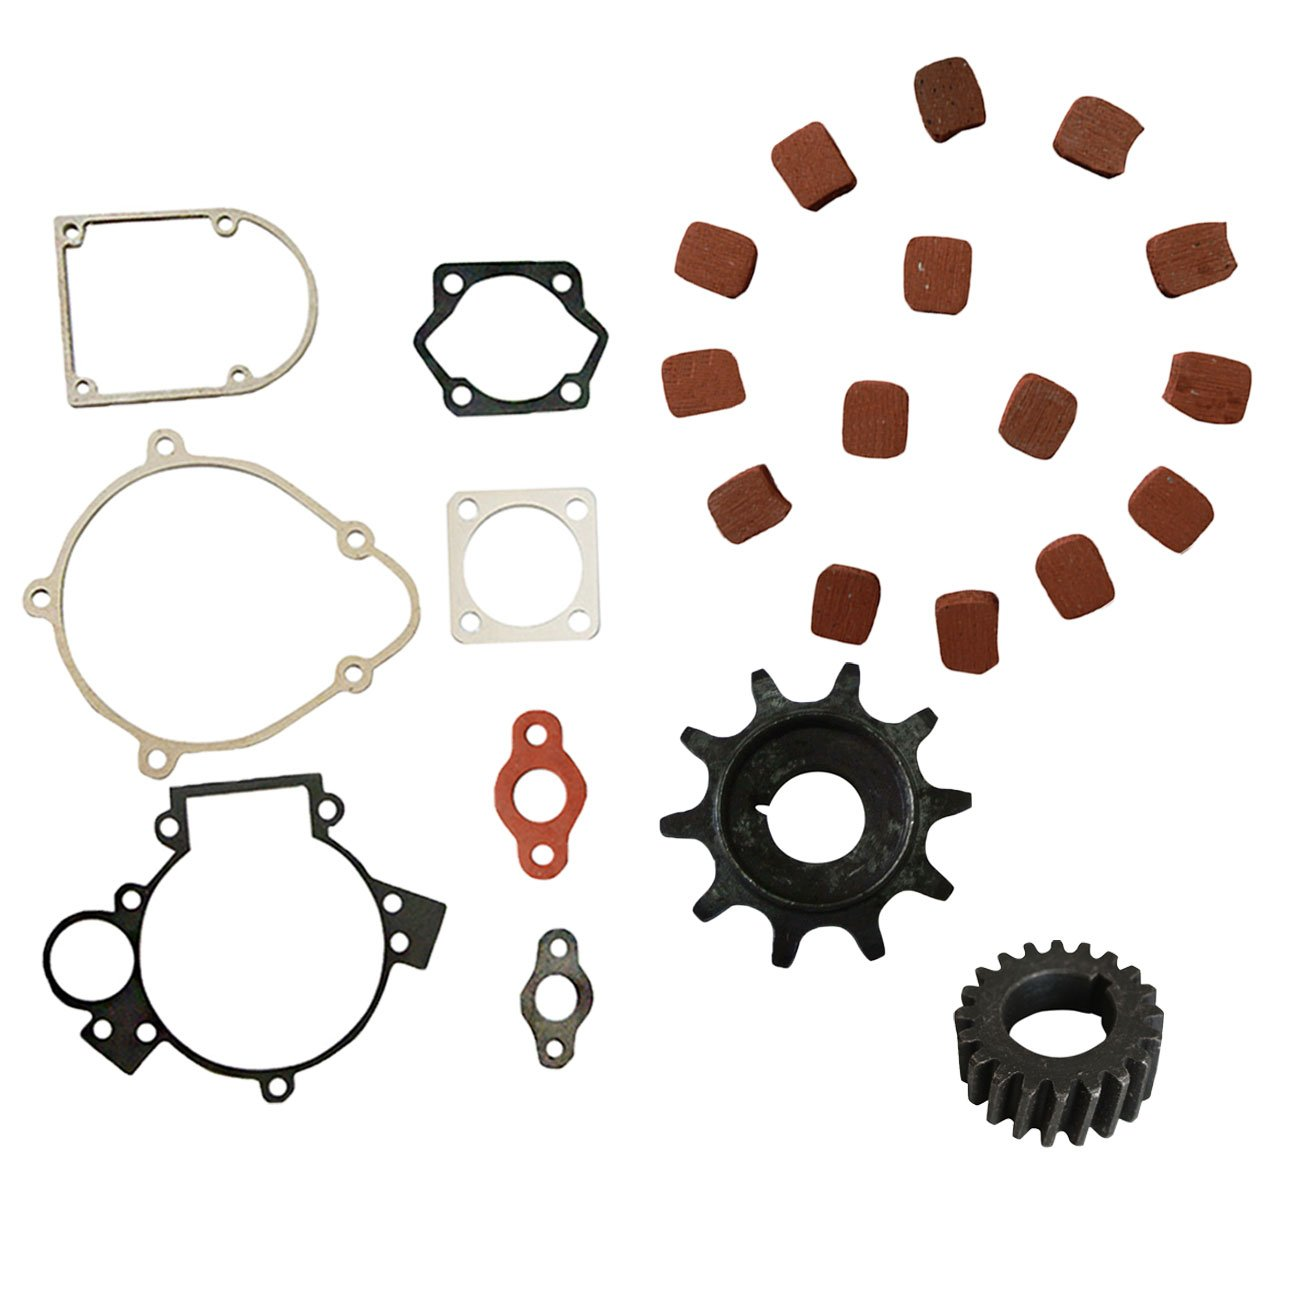 Clutch Gear Puller Gasket Set For 66cc 80cc Motorized Bicycle